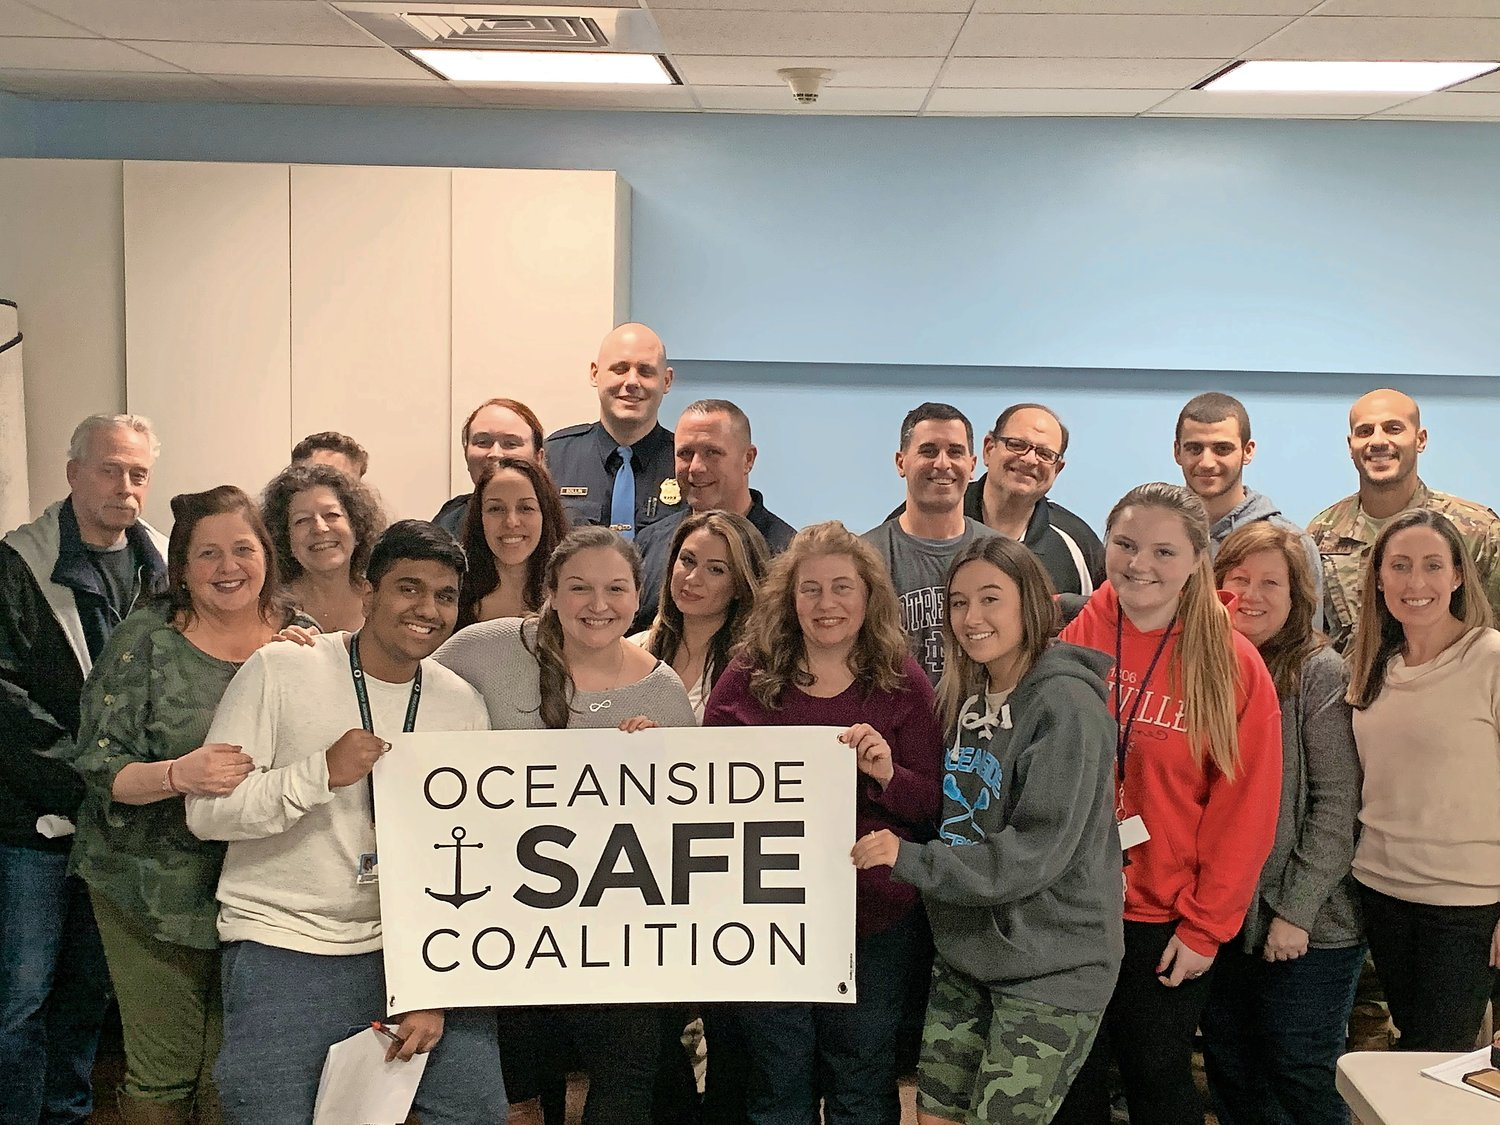 The Oceanside SAFE Coalition met on Feb. 27 at the Oceanside Library. The group typically meets every third Thursday of the month.